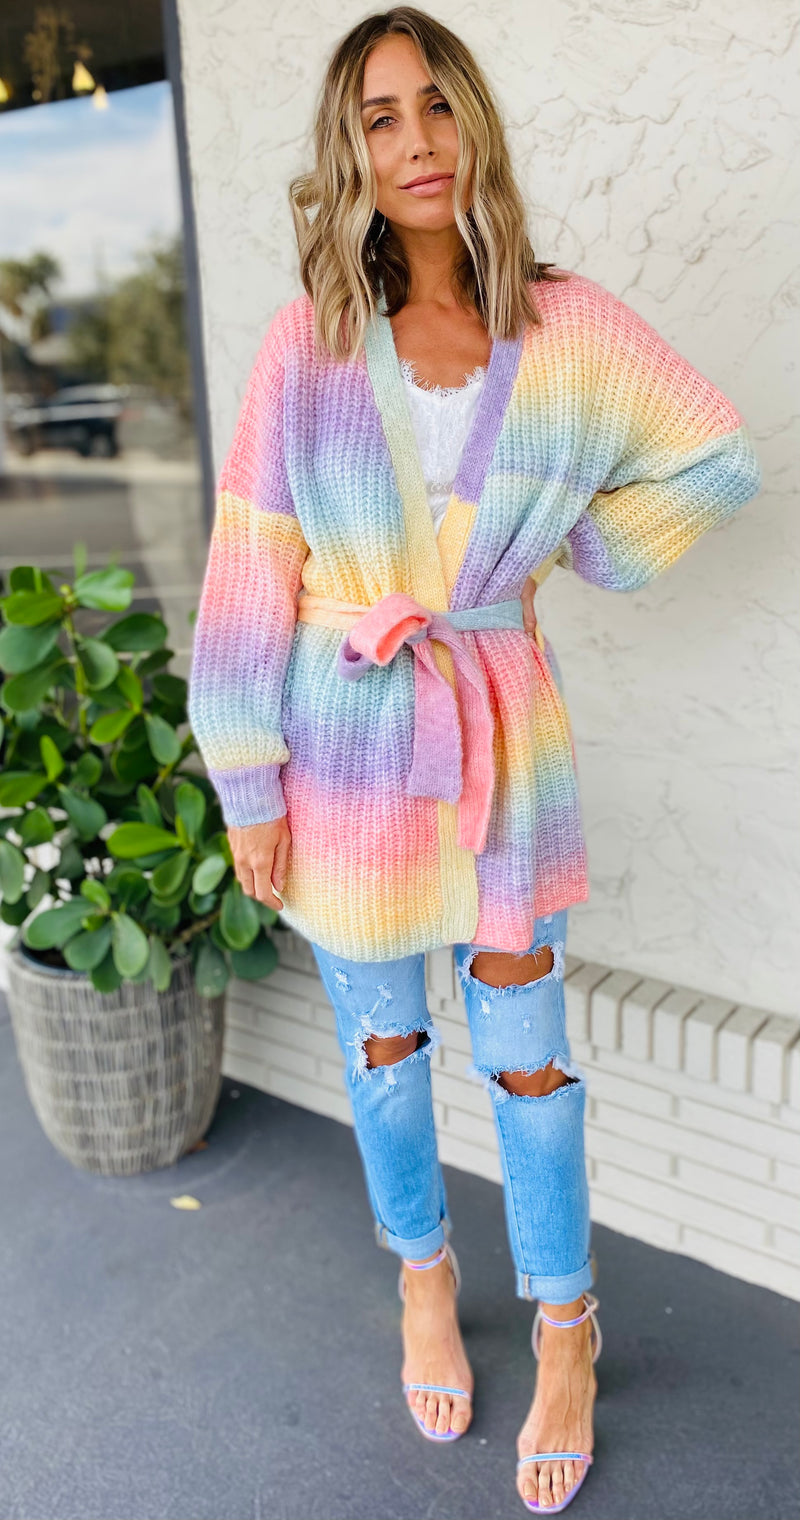 The Candyland Cardigan